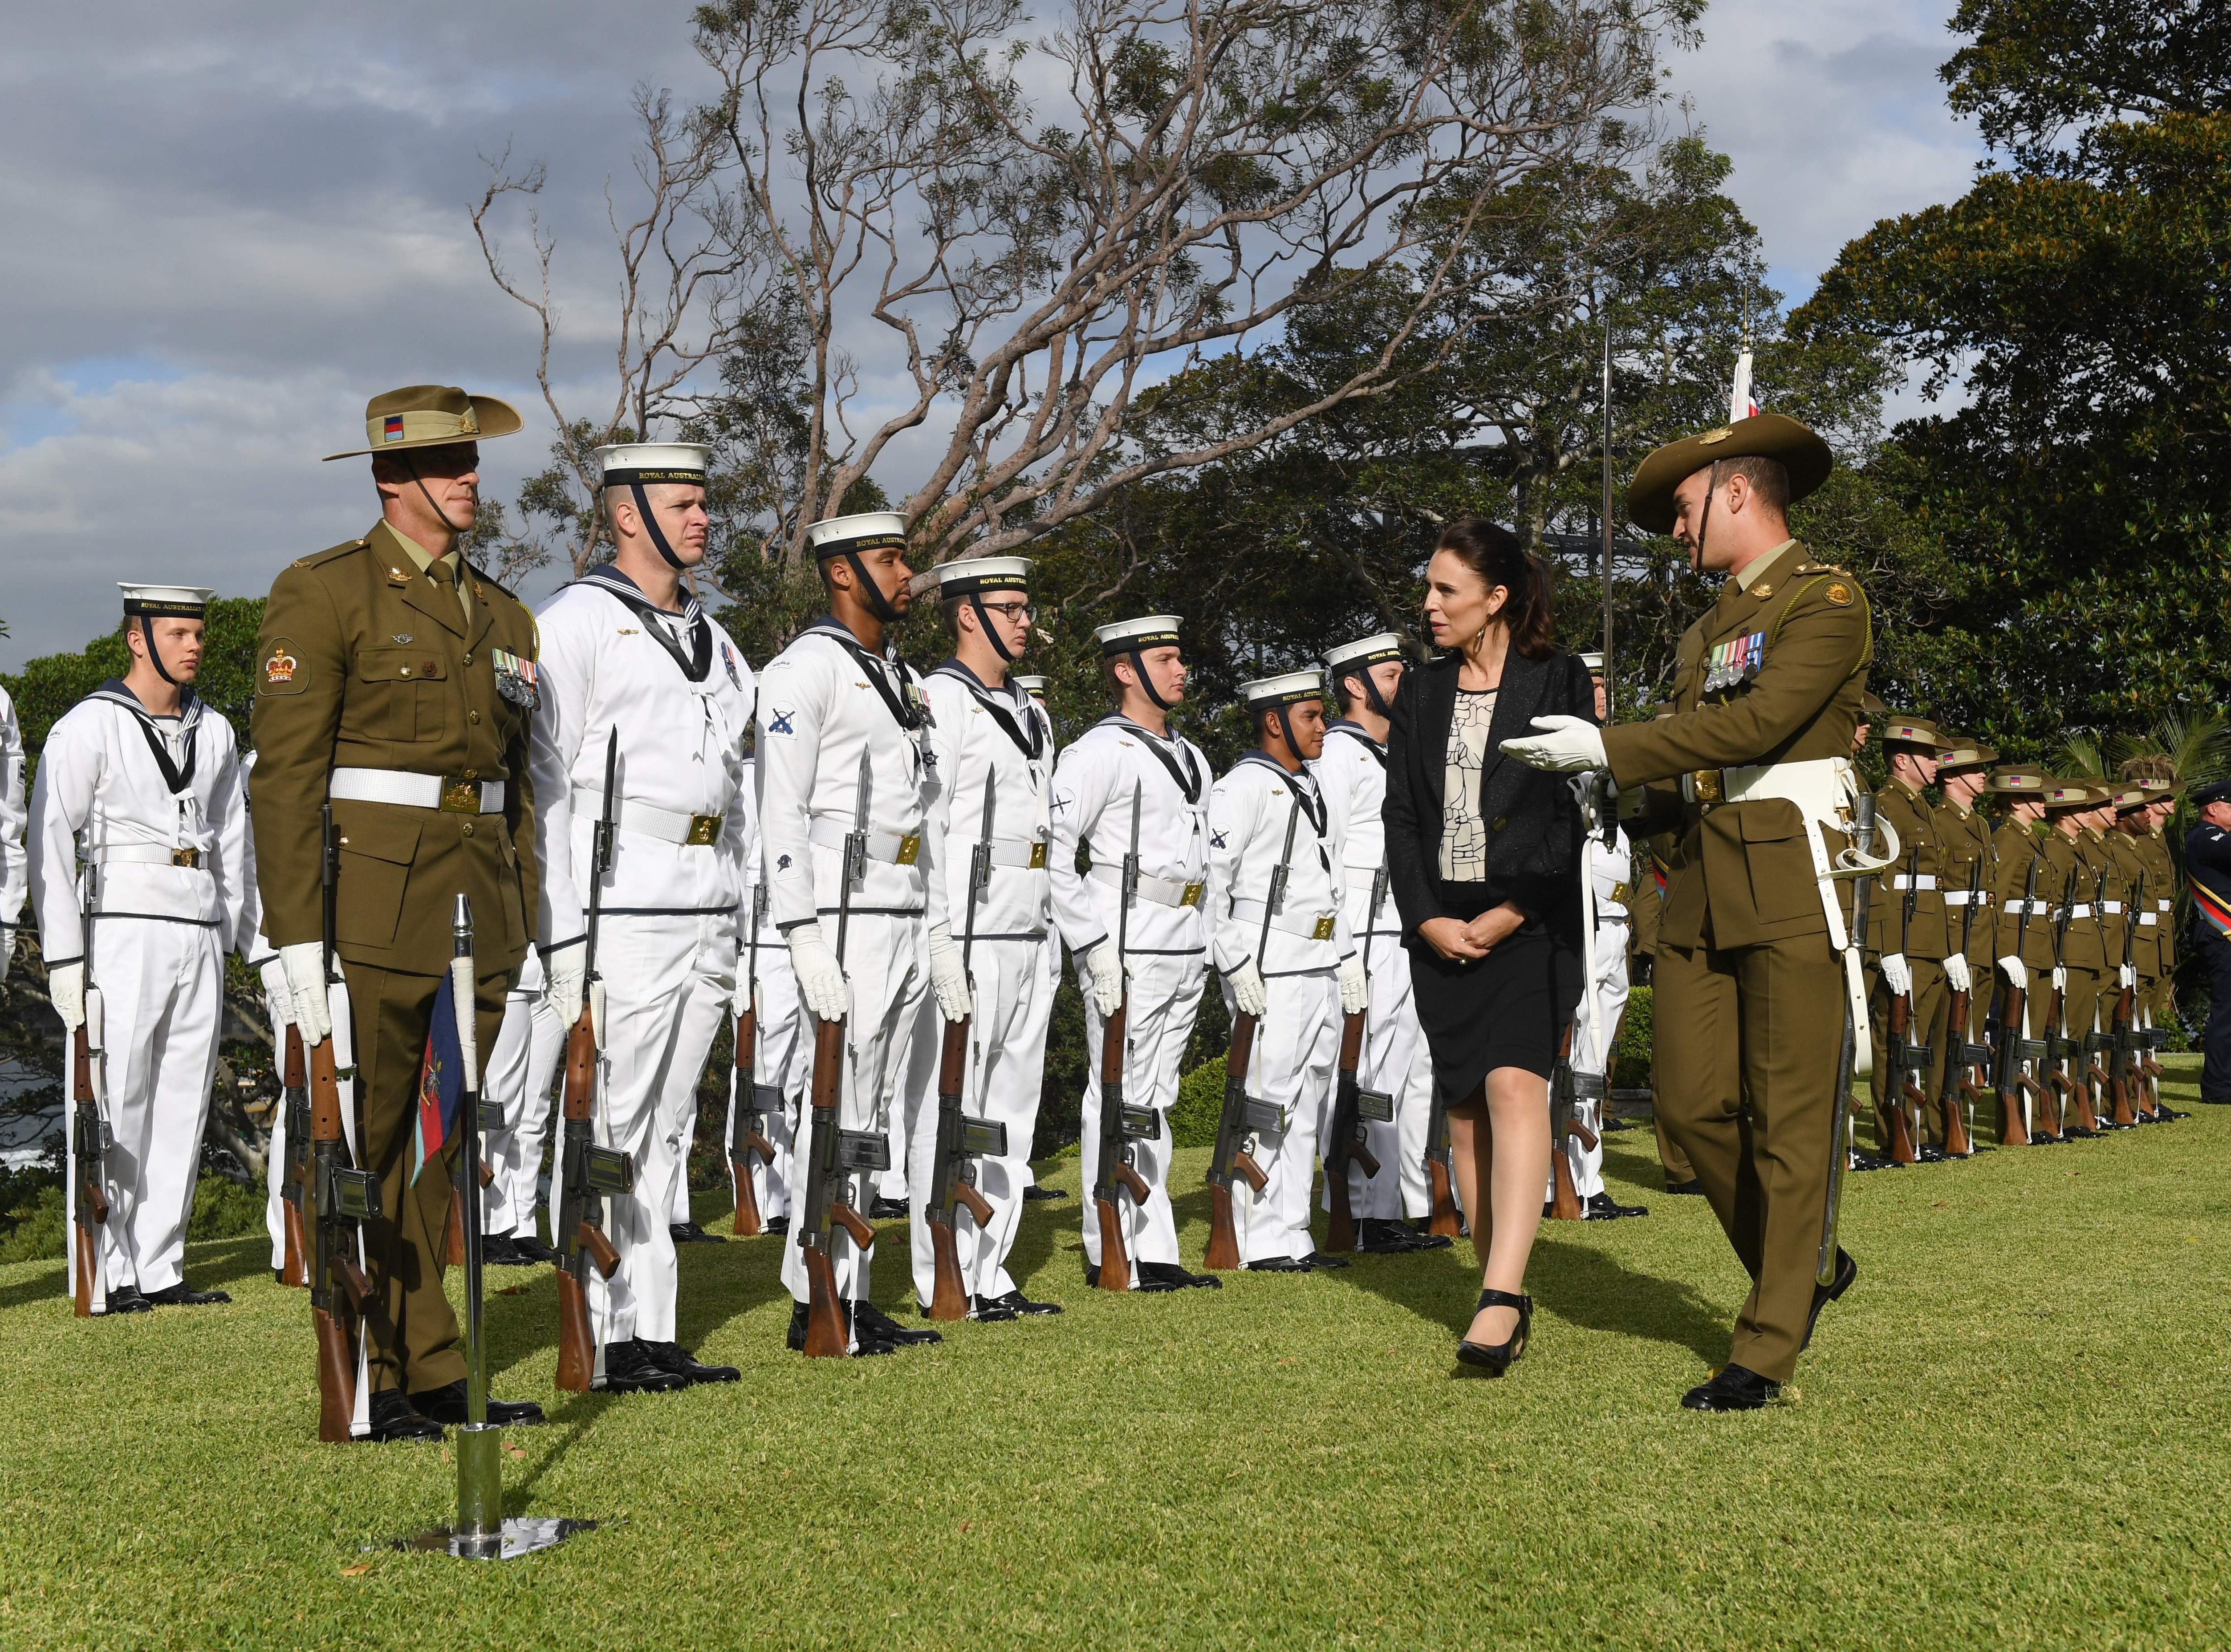 New Zealand's Prime Minister Jacinda Ardern inspects the troops at a ceremonial welcome at Admiralty House in Sydney on March 2, 2018. Ardern is with Australian Prime Minister Malcolm Turnbull for bilateral talks during her two-day visit.